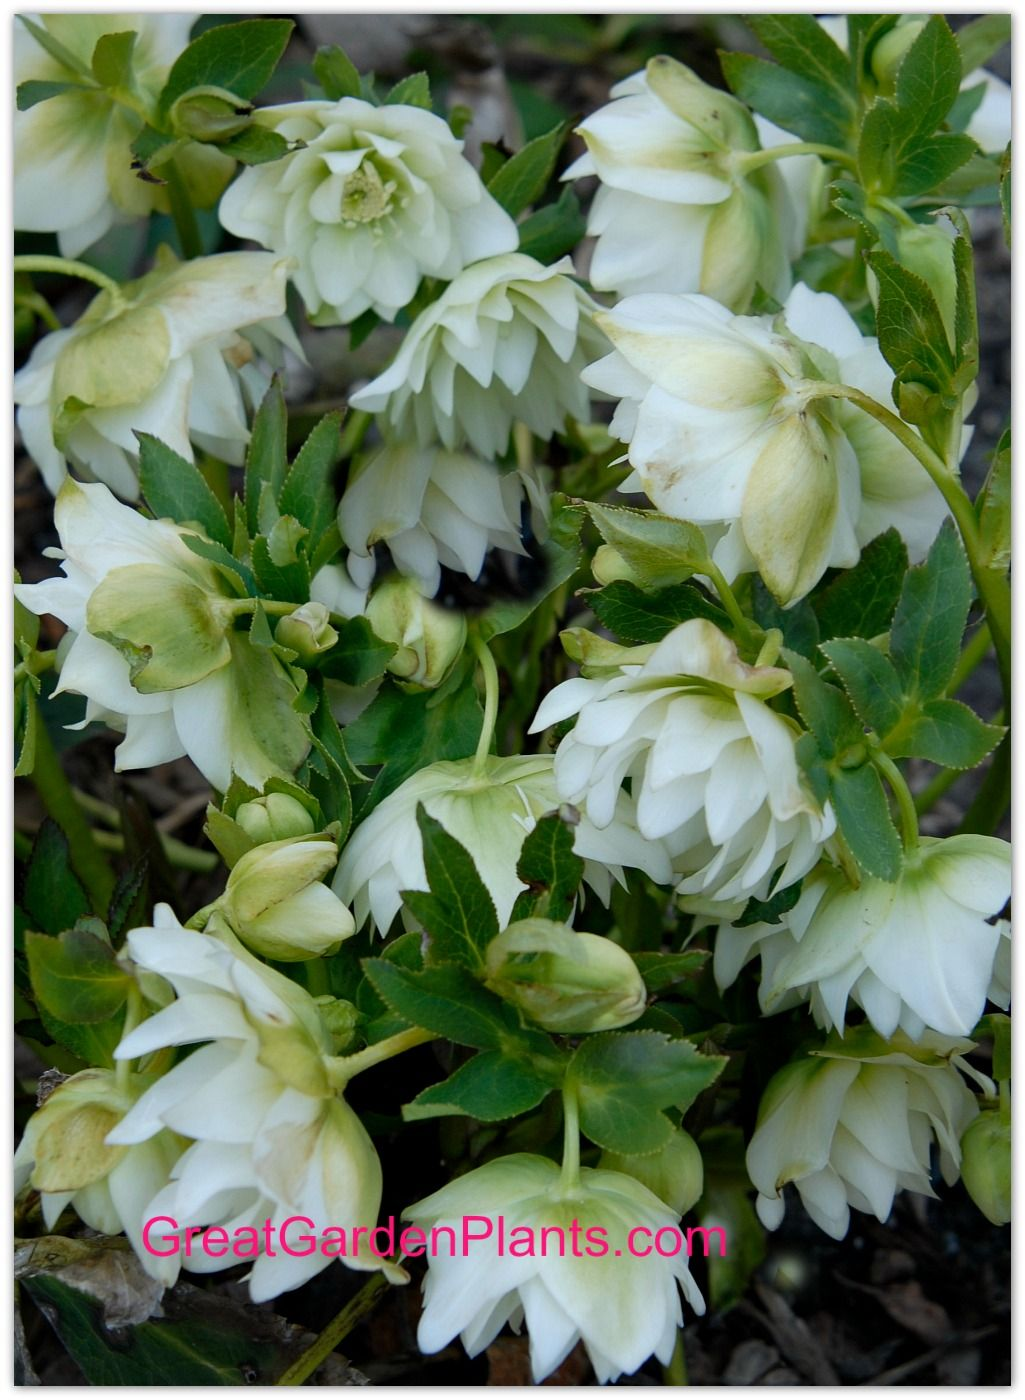 Wedding Ruffles Winter Thriller Hellebore.  Lots of full double white flowers in early spring. Great for the Shade Garden